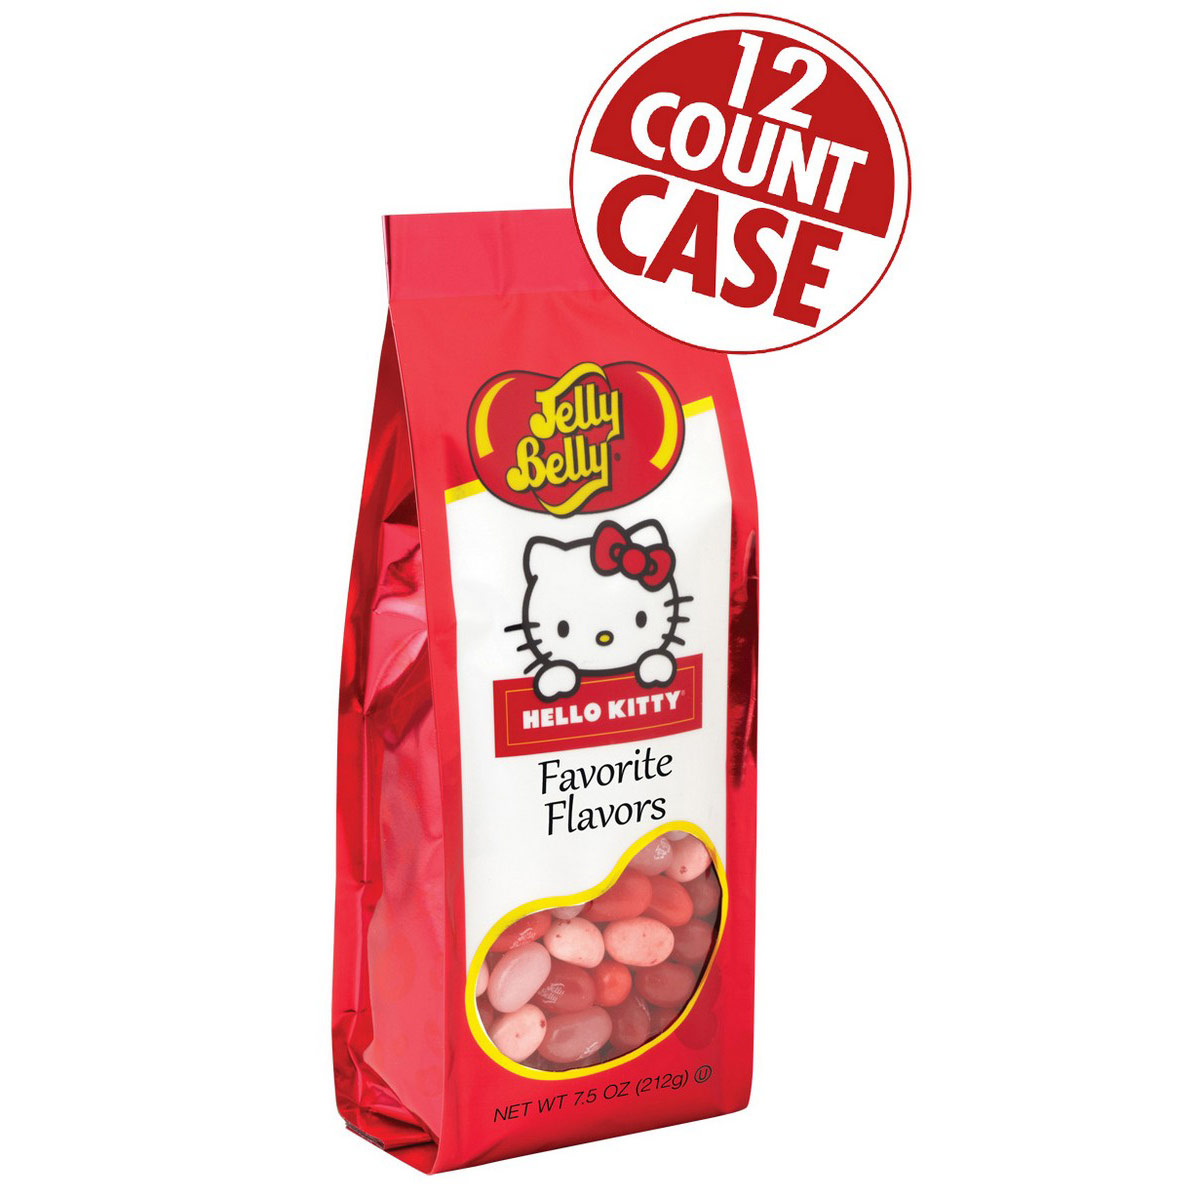 Hello Kitty<sup>®</sup> Favorite Flavors Jelly Beans - 7.5 oz Gift Bag - 12 Count Case